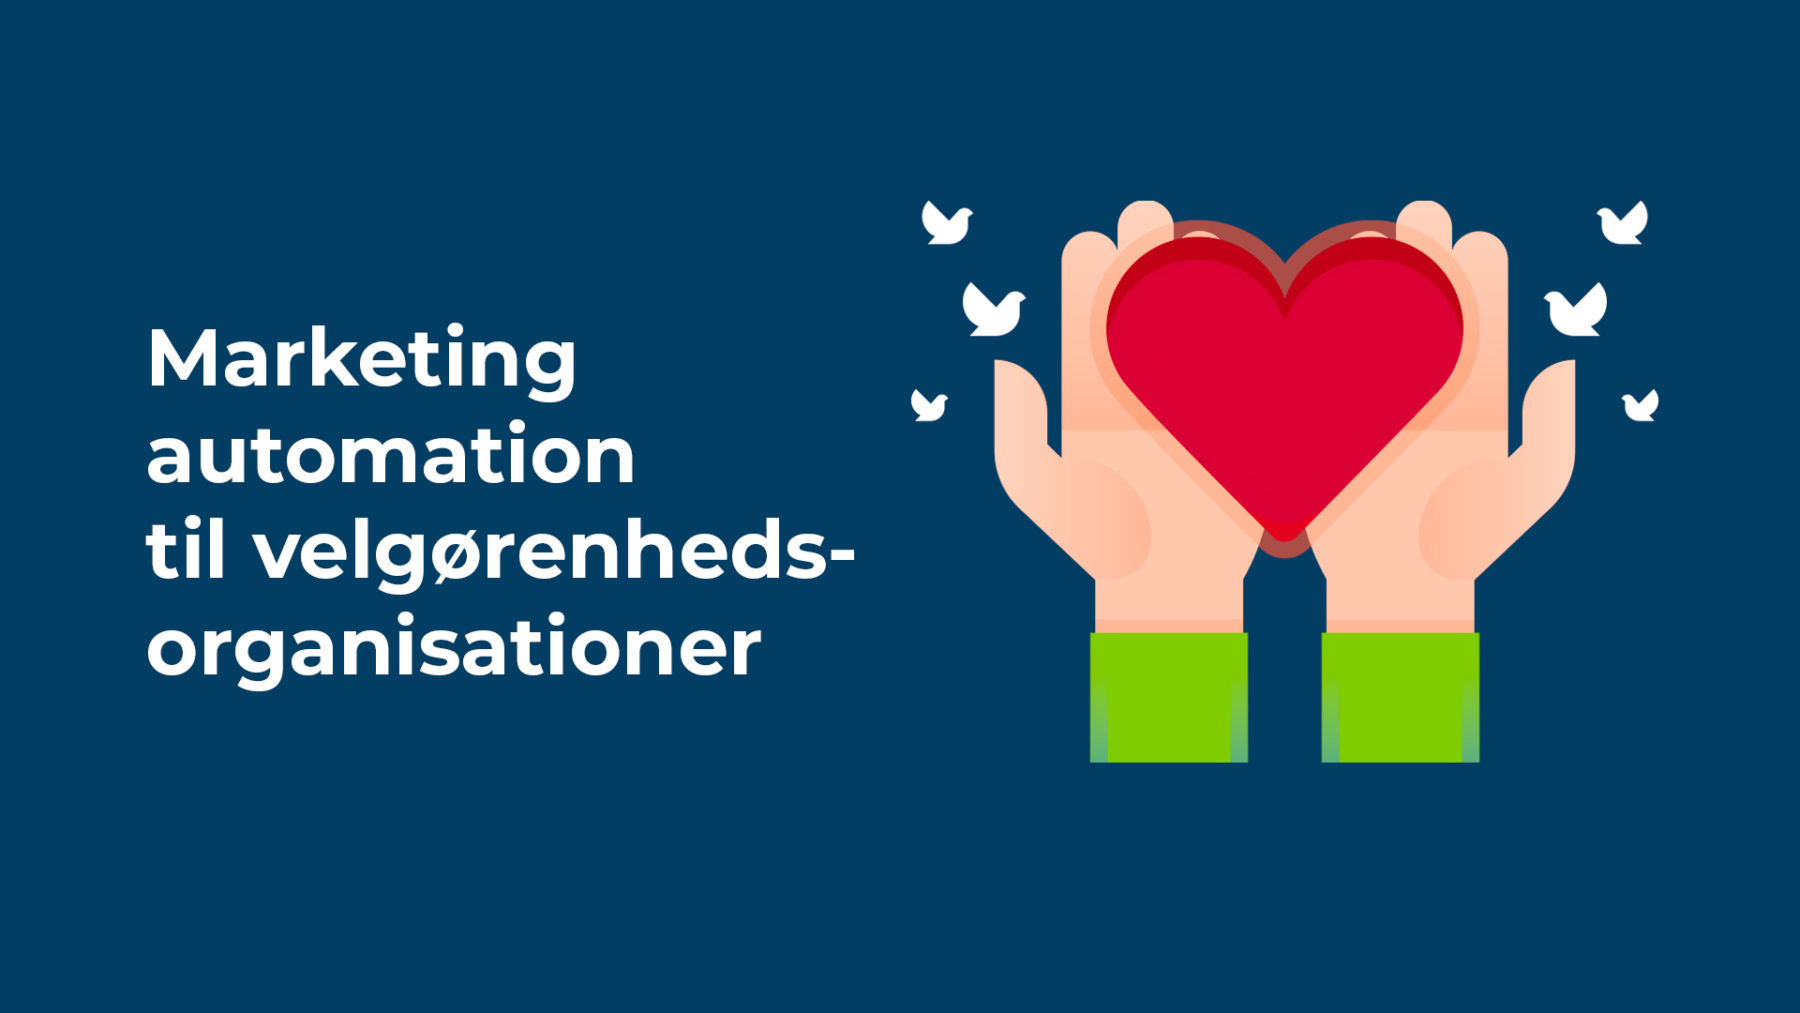 Marketing automation til velgørenhedsorganisationer